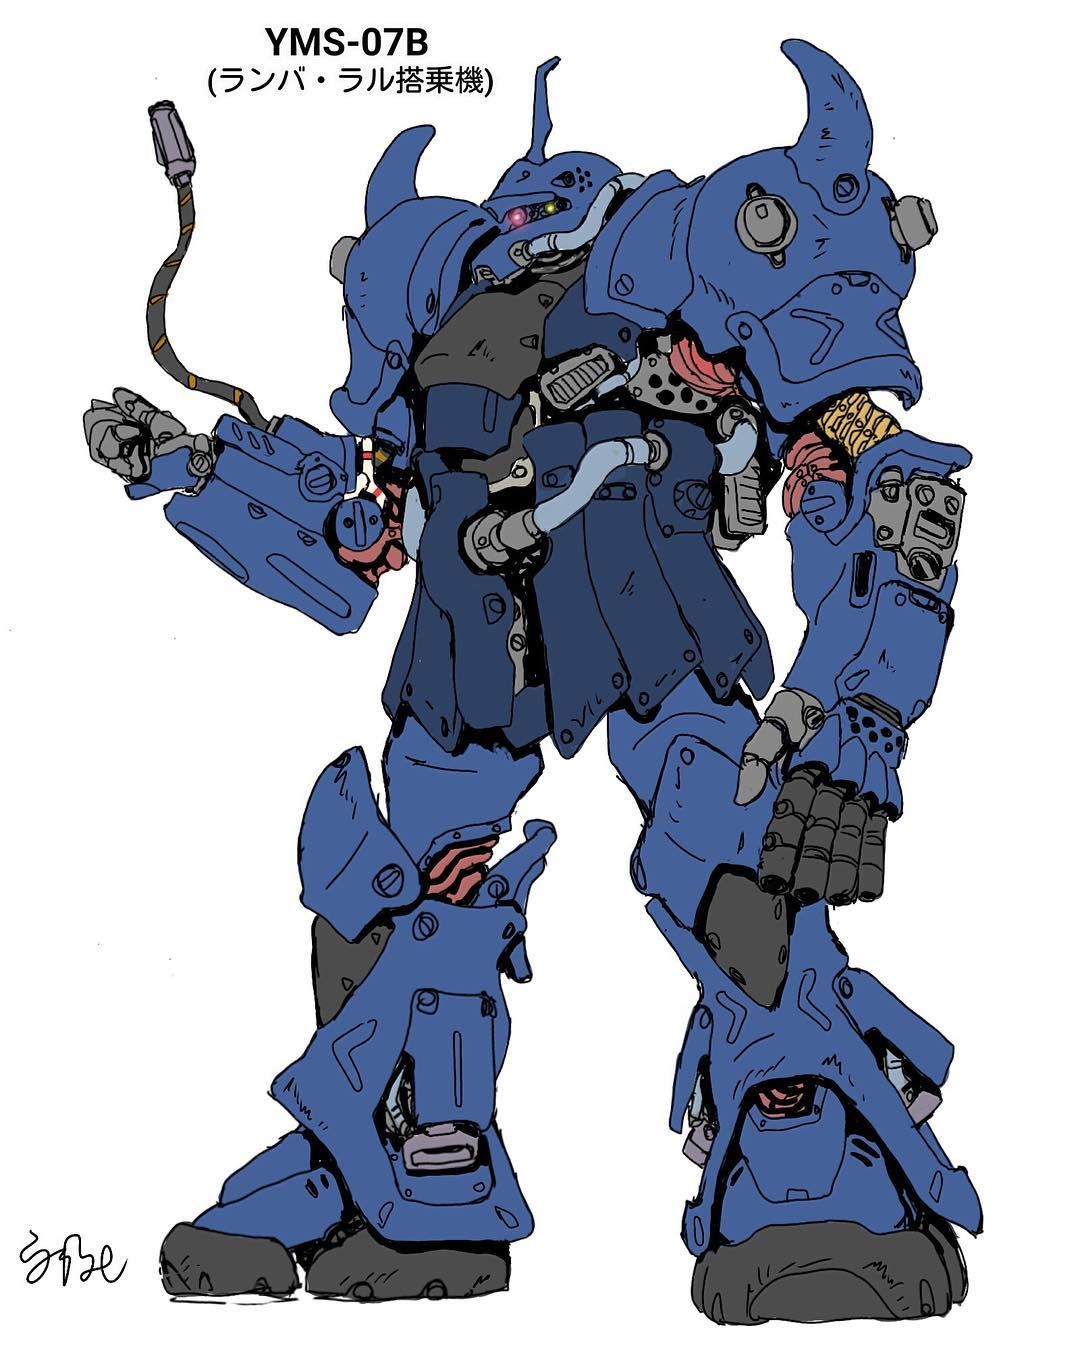 Pin By Dylan Miller On Mobile Suit Gundam ガンダム ロボット